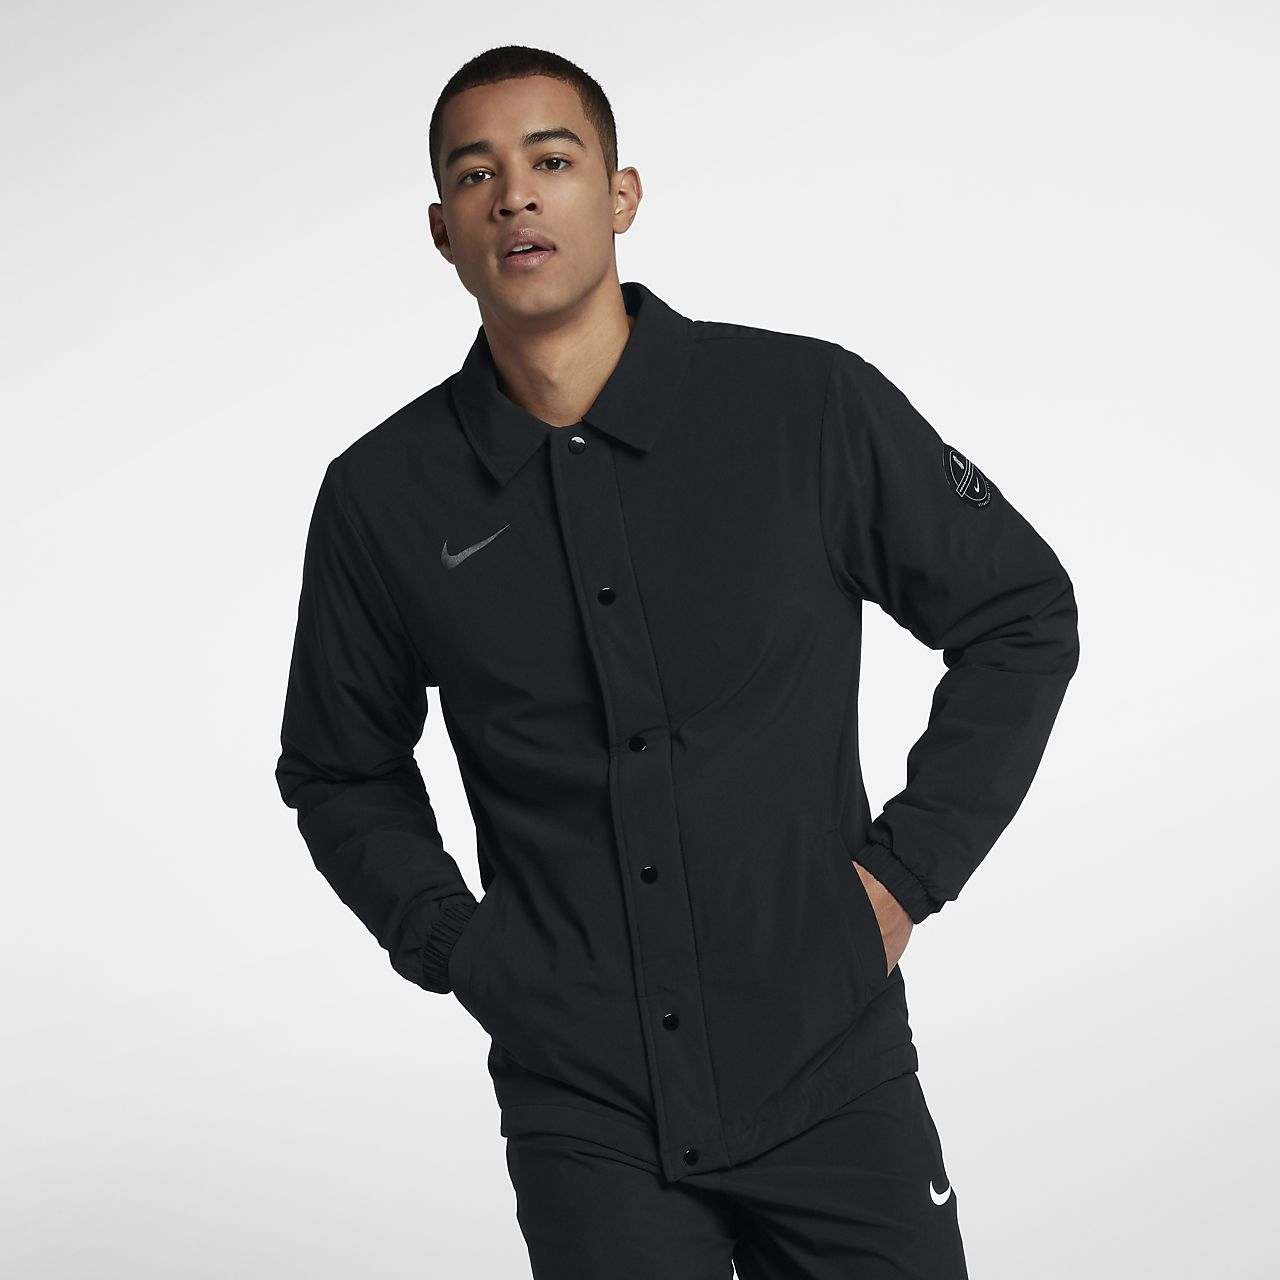 Low Resolution Nike Kyrie Men's Basketball Jacket Nike Kyrie Men's  Basketball Jacket